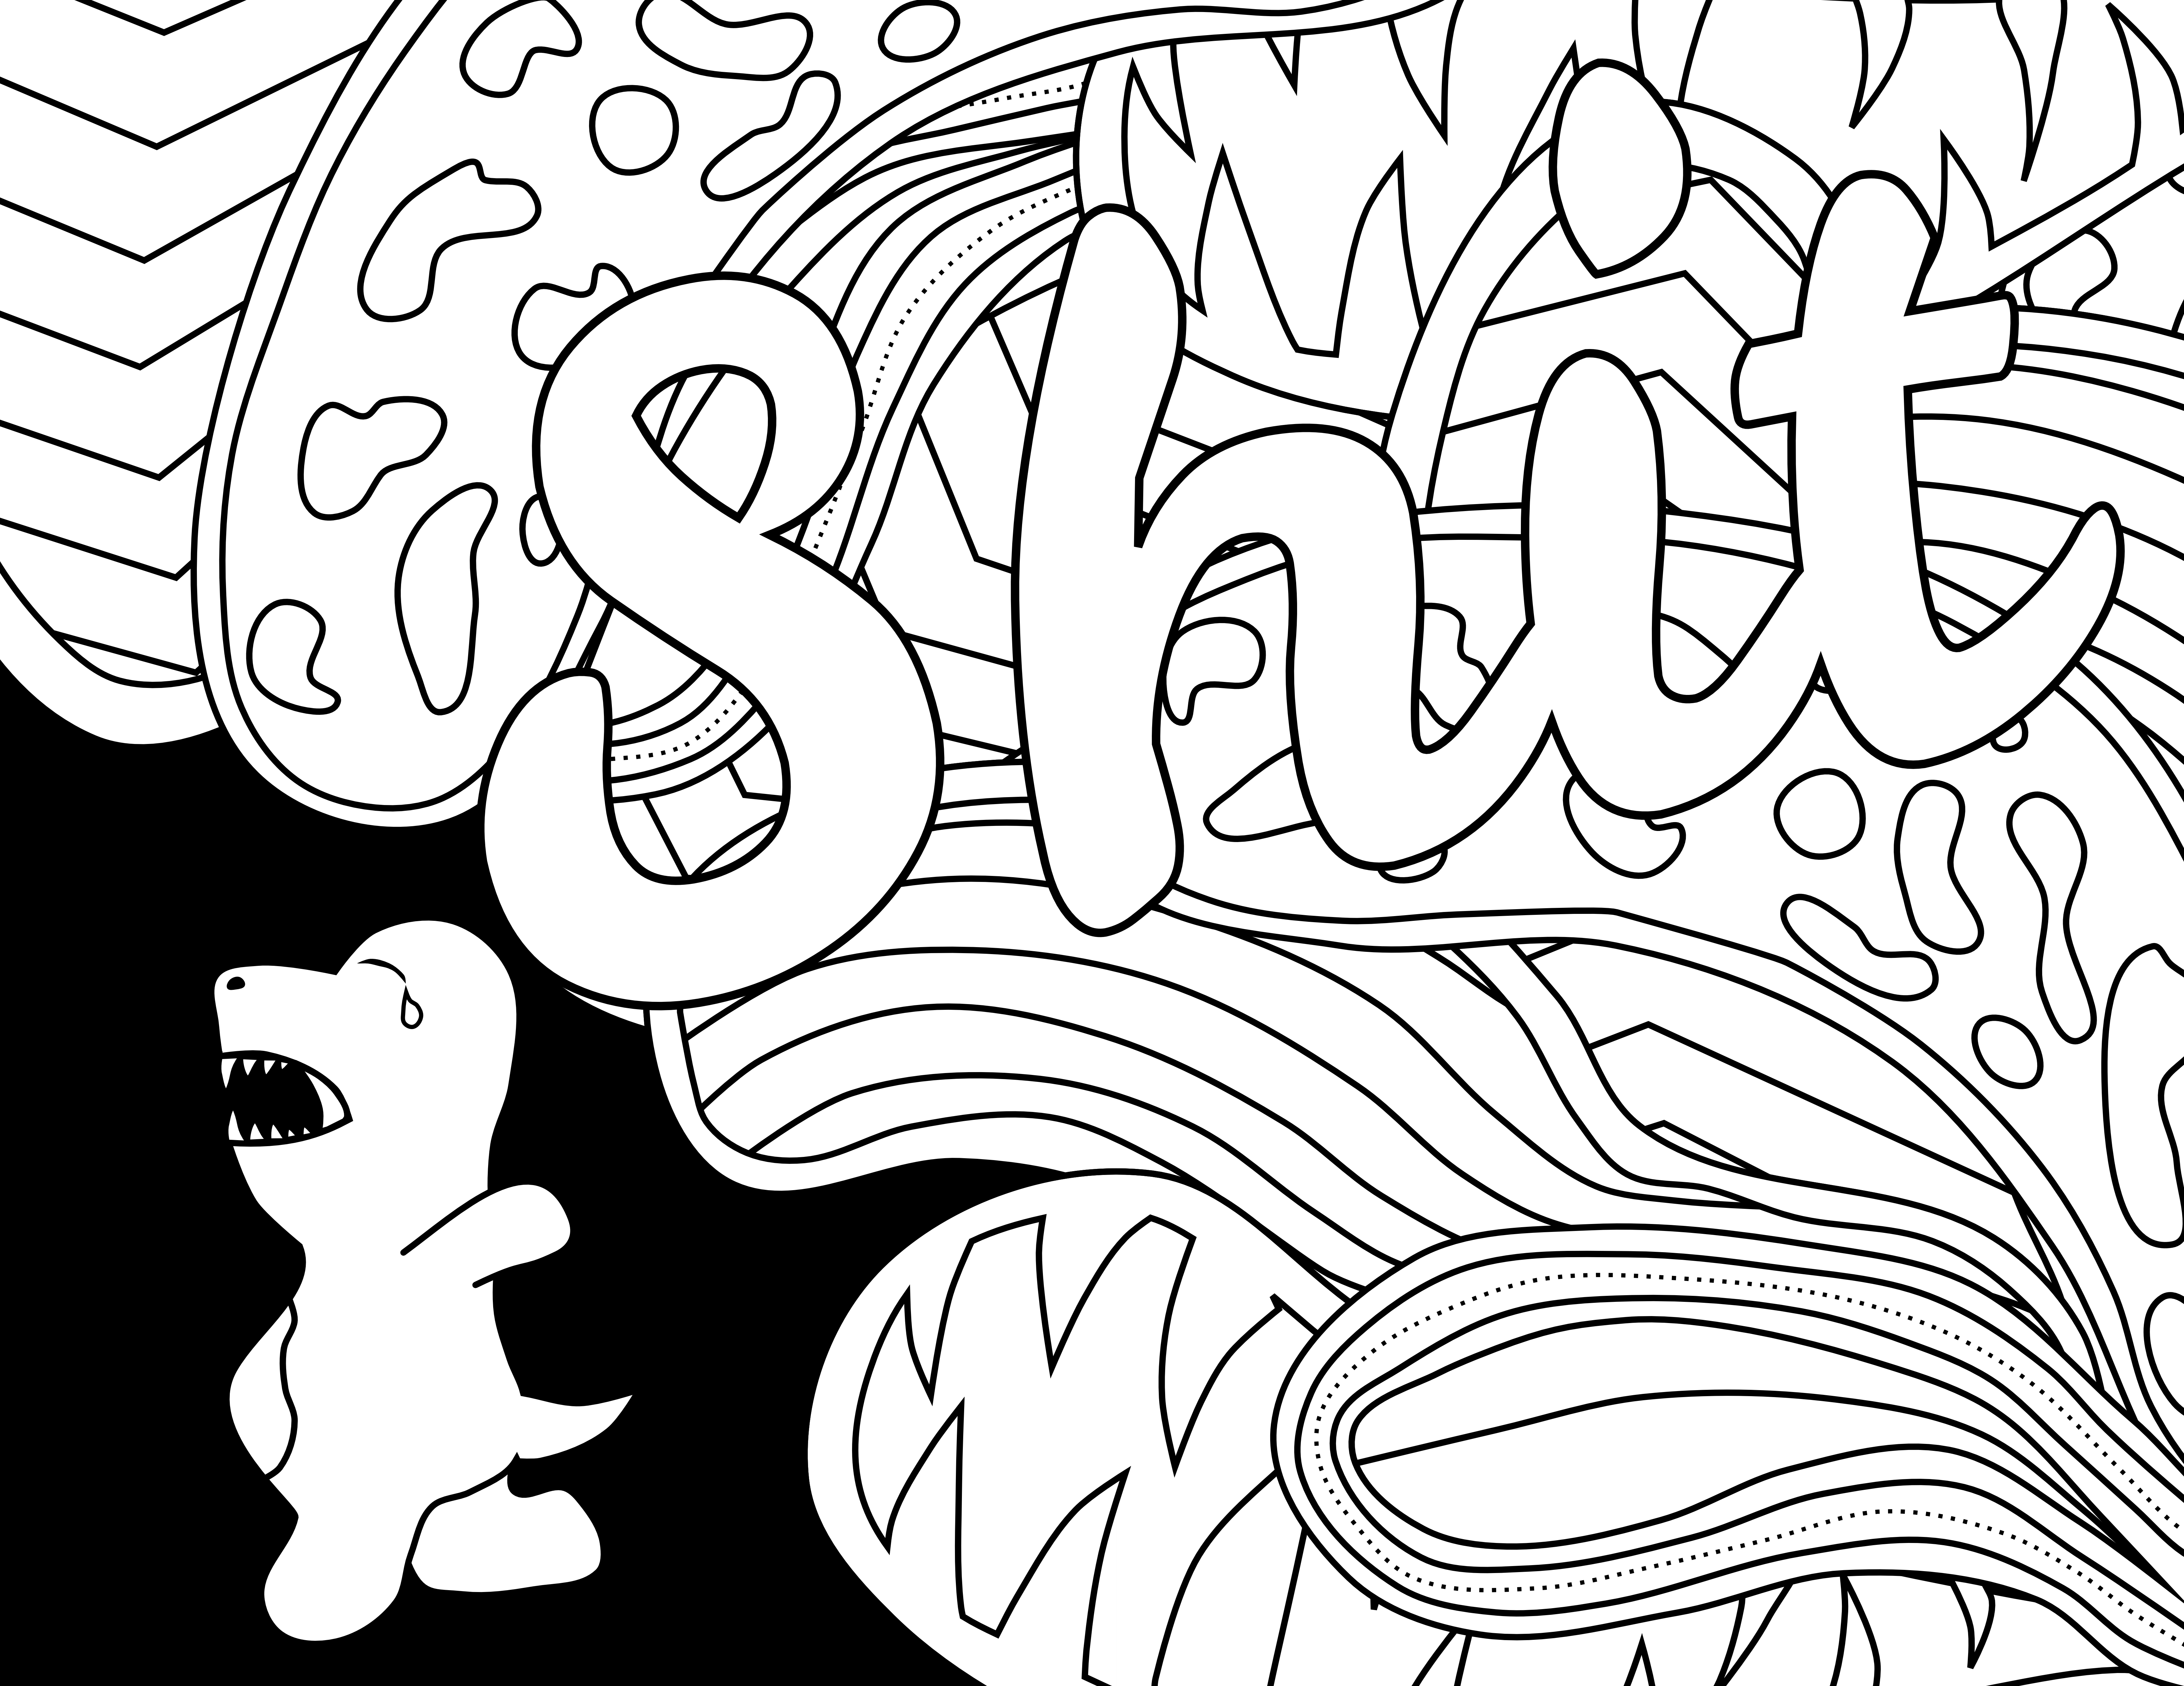 Sw swear word coloring pages etsy - Shit Adult Coloring Page Color Swear Blackout Free Coloring Pages Comes